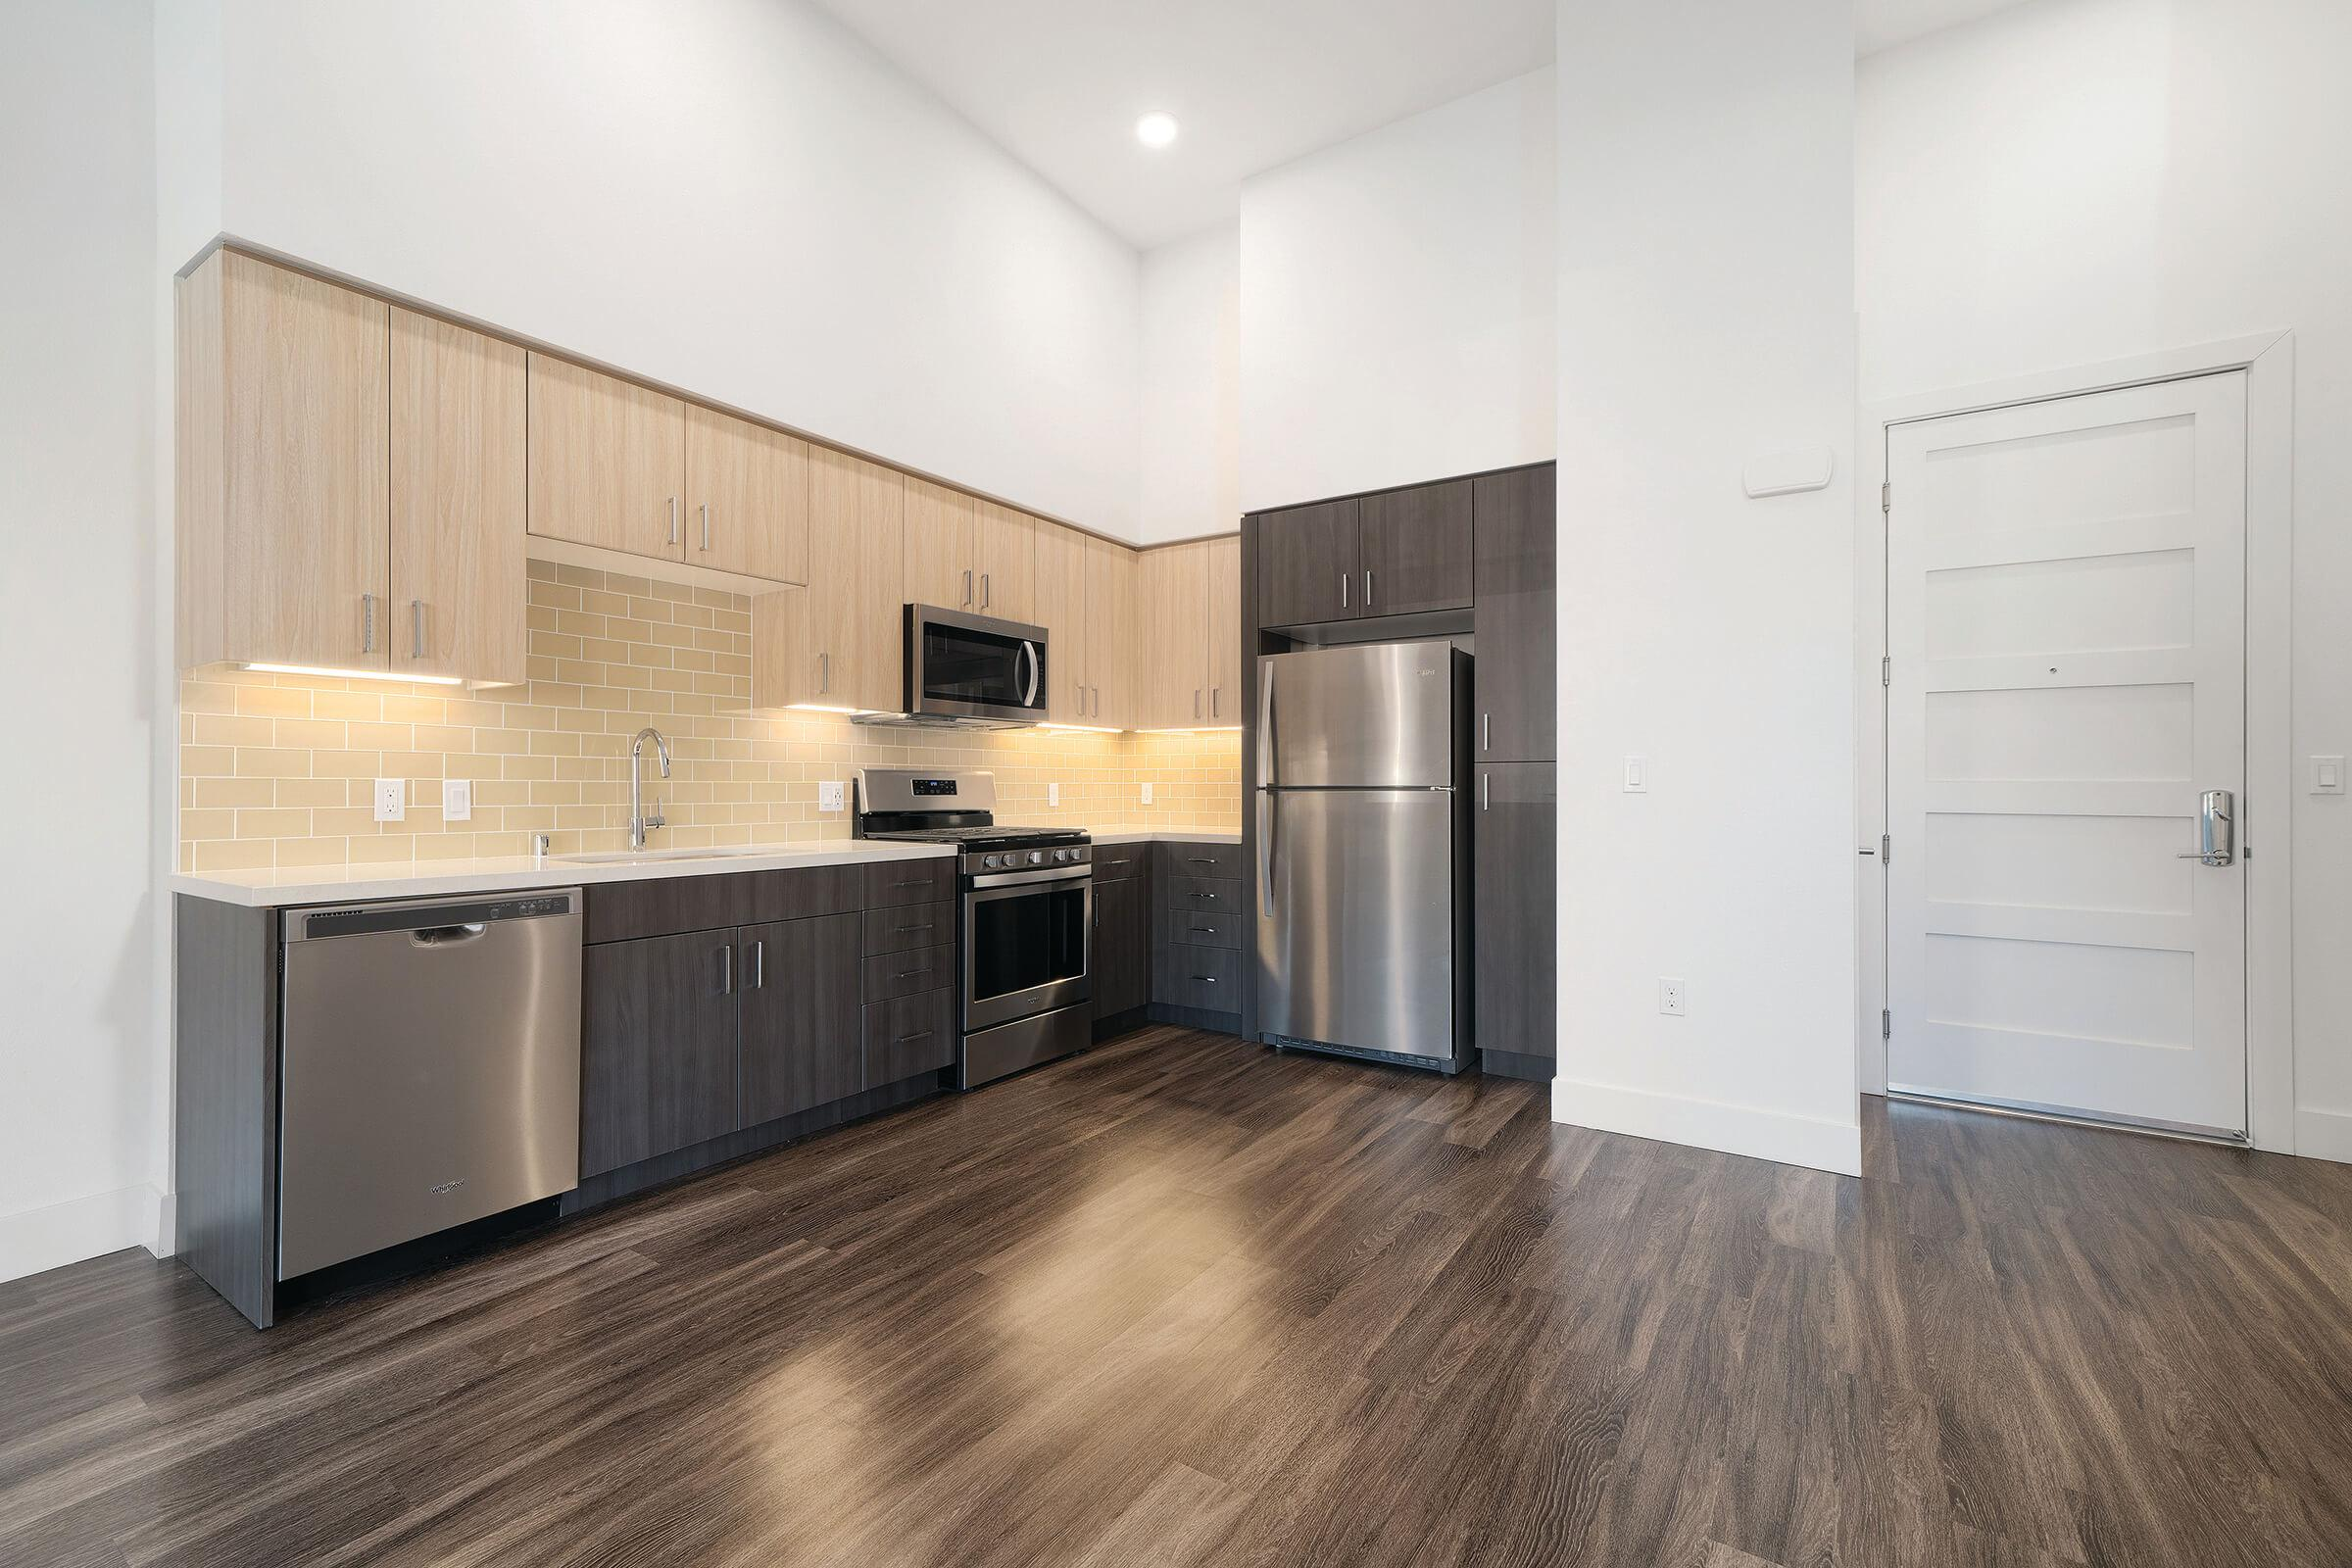 Unfurnished kitchen with stainless steel appliances